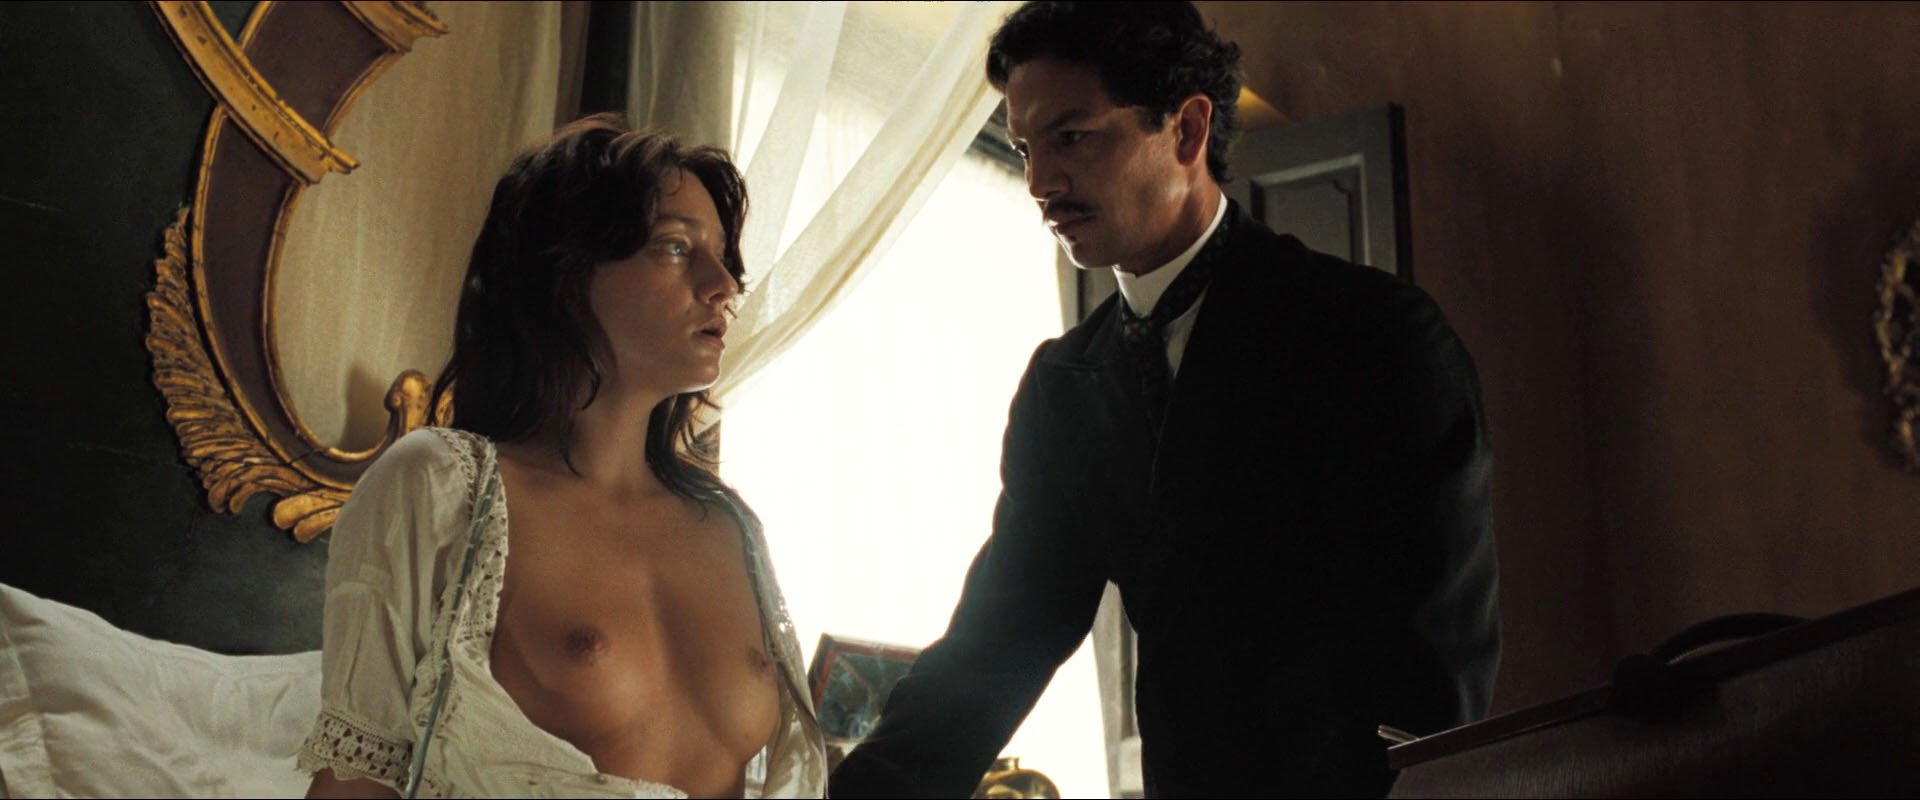 Giovanna Mezzogiorno nude, Angie Cepeda sexy, Ana Claudia Talancon nude - Love in the Time of Cholera (2007)